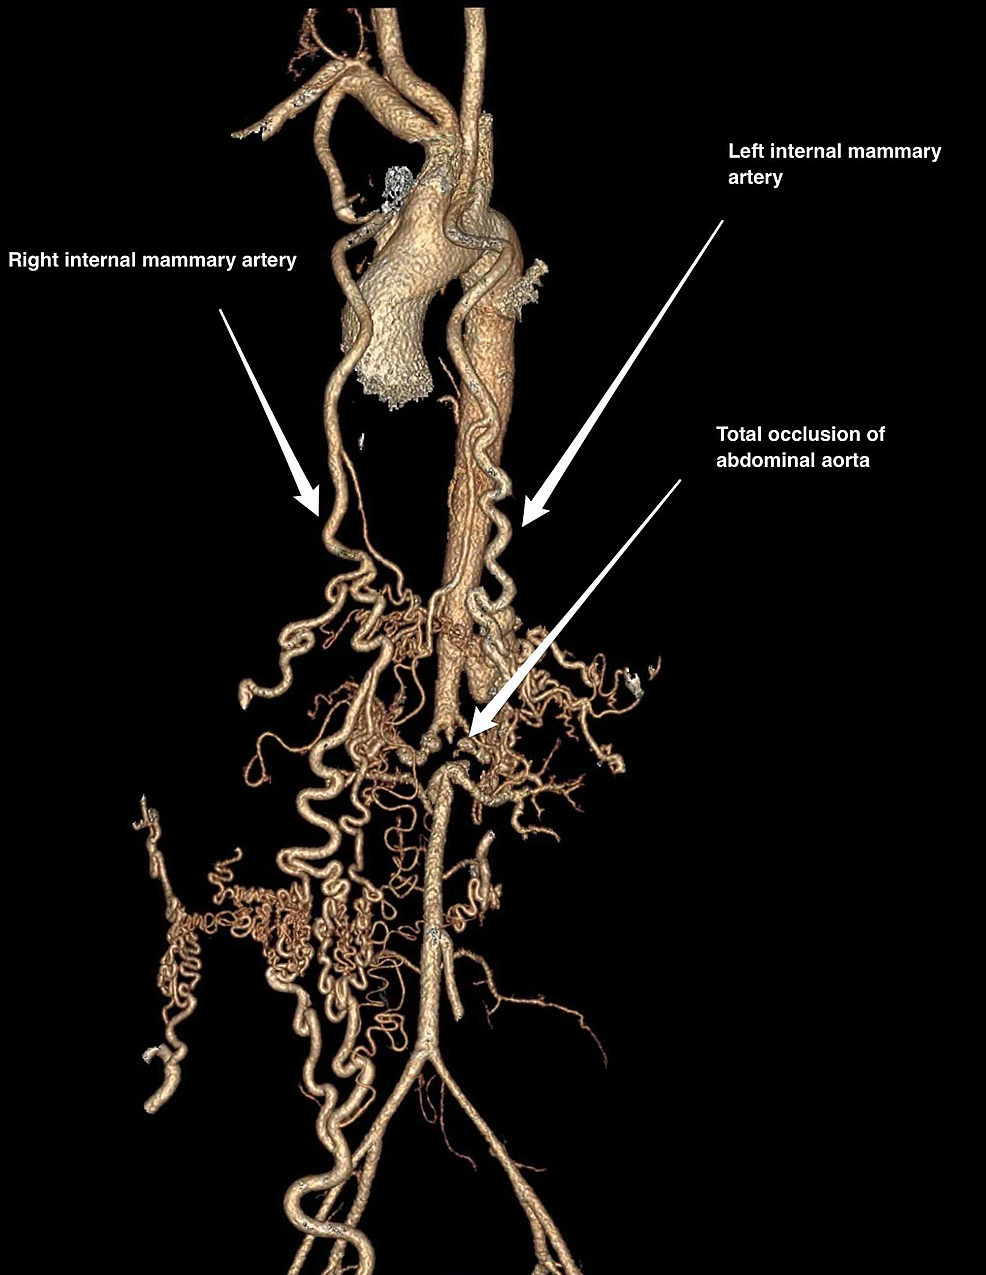 Computed-tomography-aortogram-showing-collateral-vessels-formed-by-the-right-and-left-internal-mammary-artery